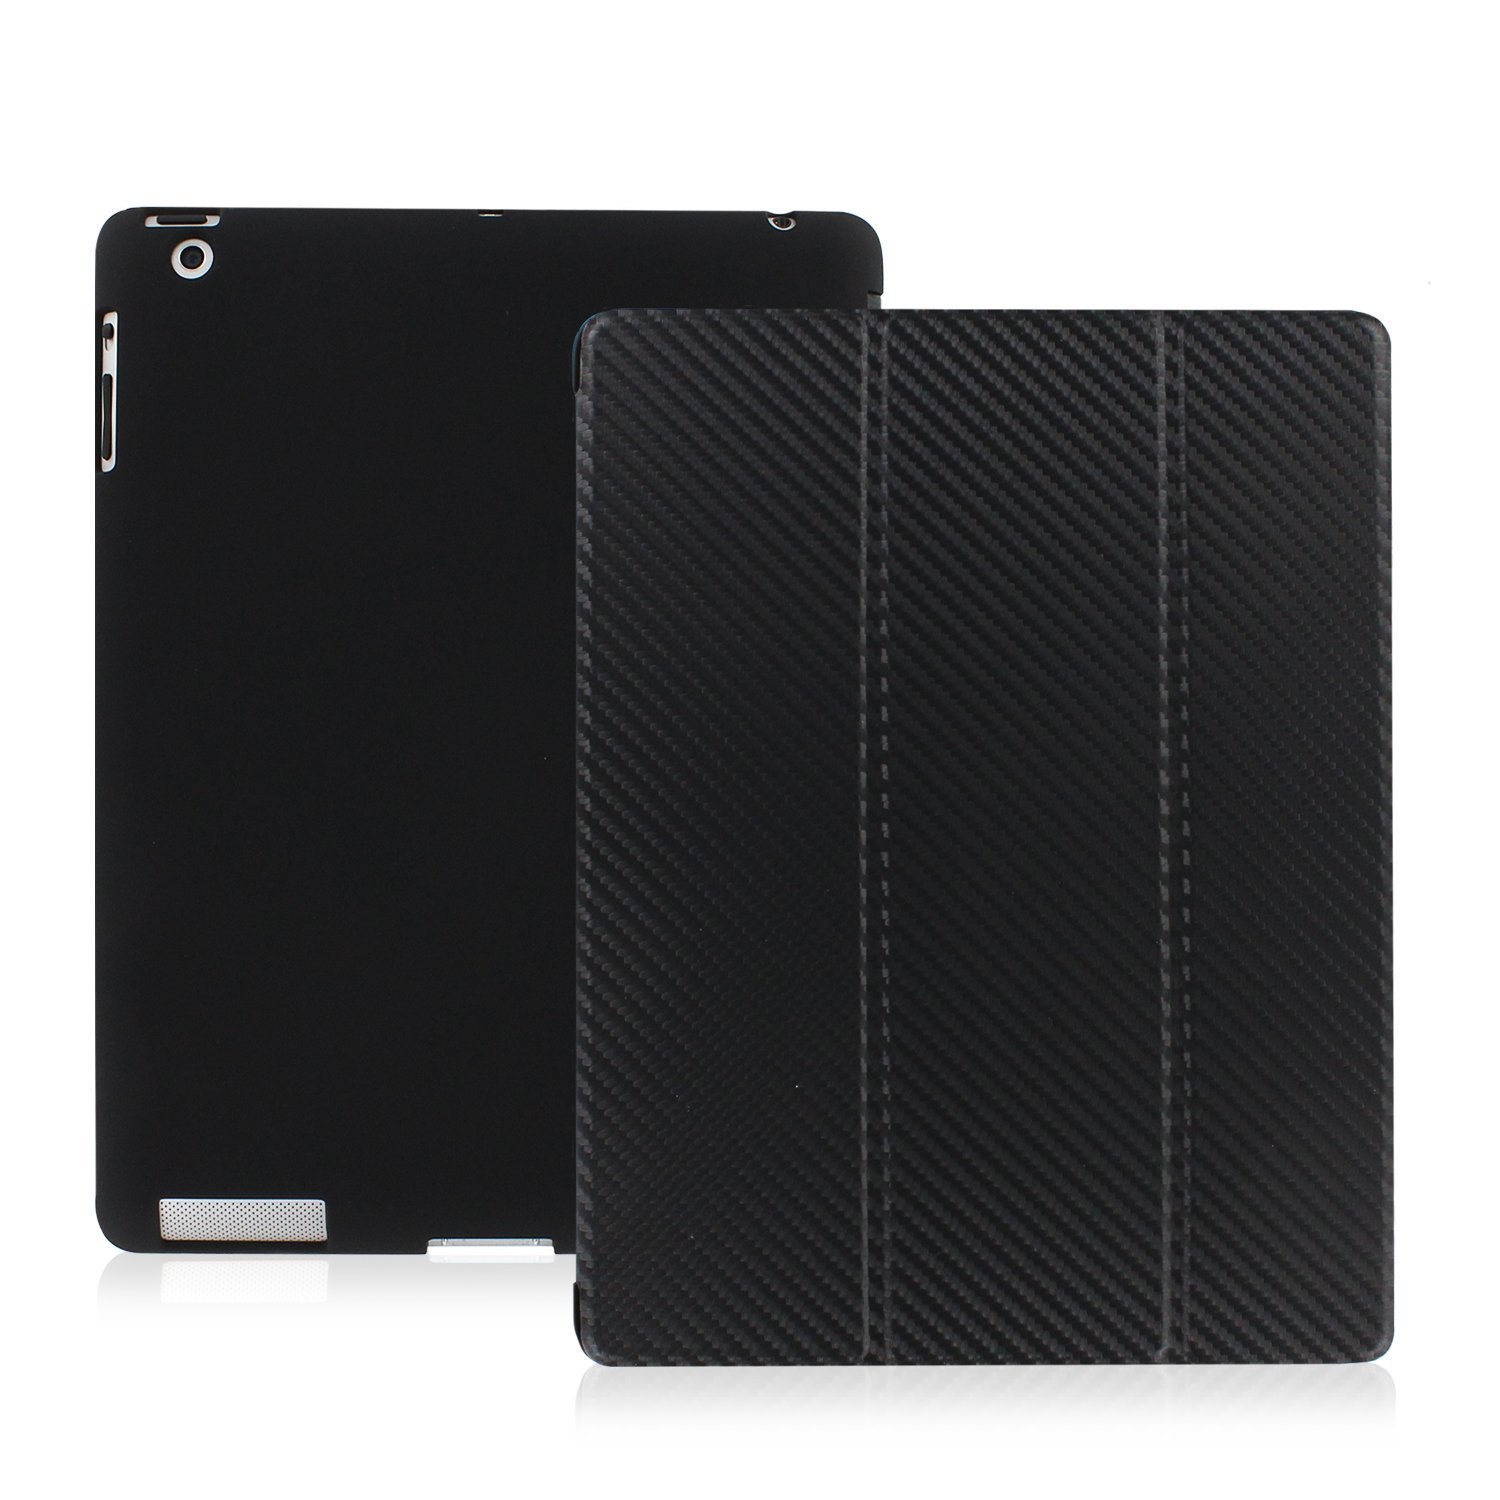 KHOMO - iPad 2 3 and 4 Generation Case - Dual Series - Super Slim Carbon Fiber Cover with Rubberized Back and Smart Auto Wake Sleep Feature for Apple iPad 2, 3rd and 4th